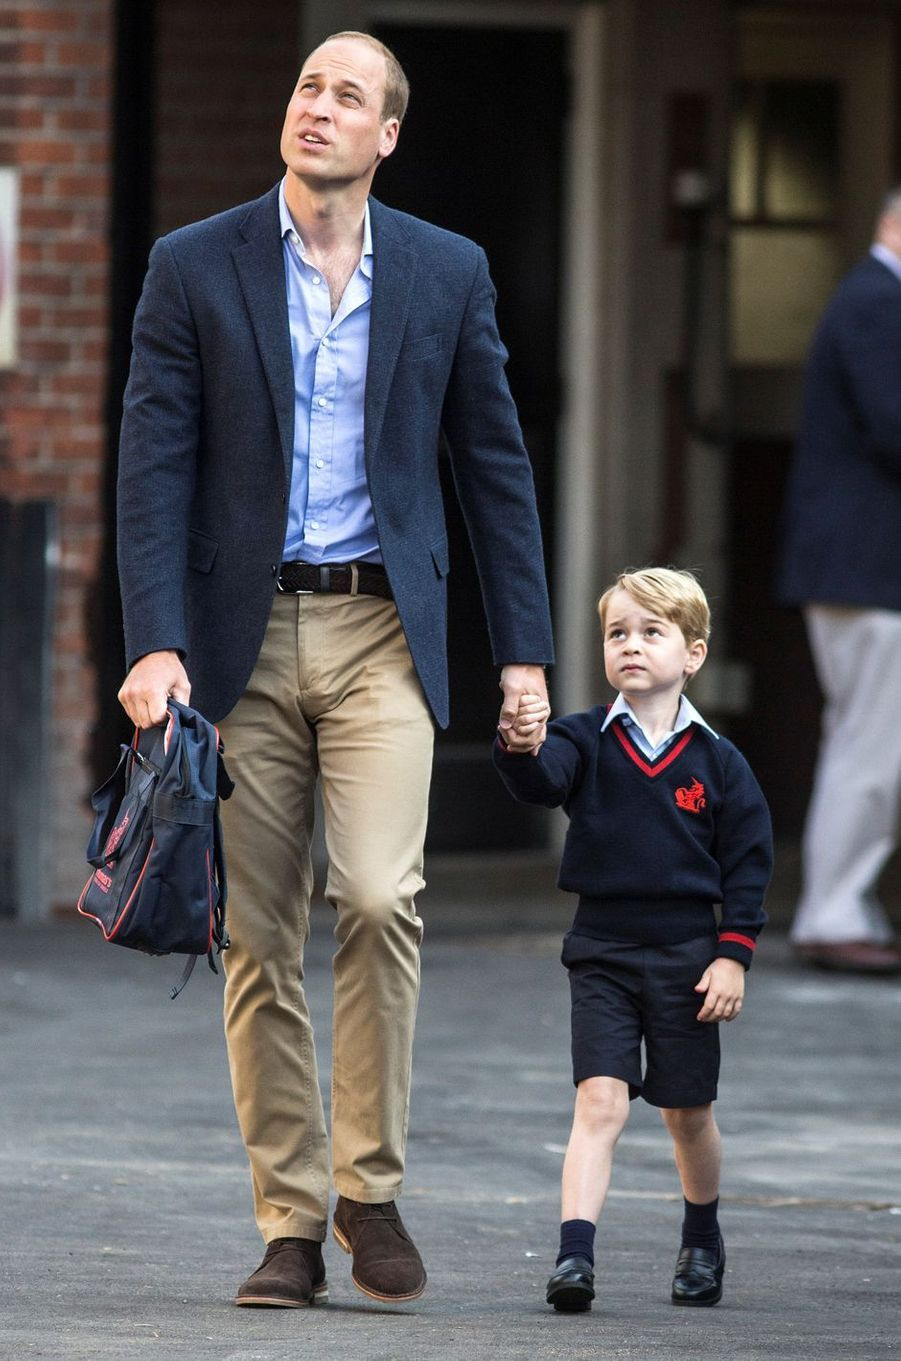 Les princes George et William à la Thomas's Battersea School à Londres, le 7 septembre 2017